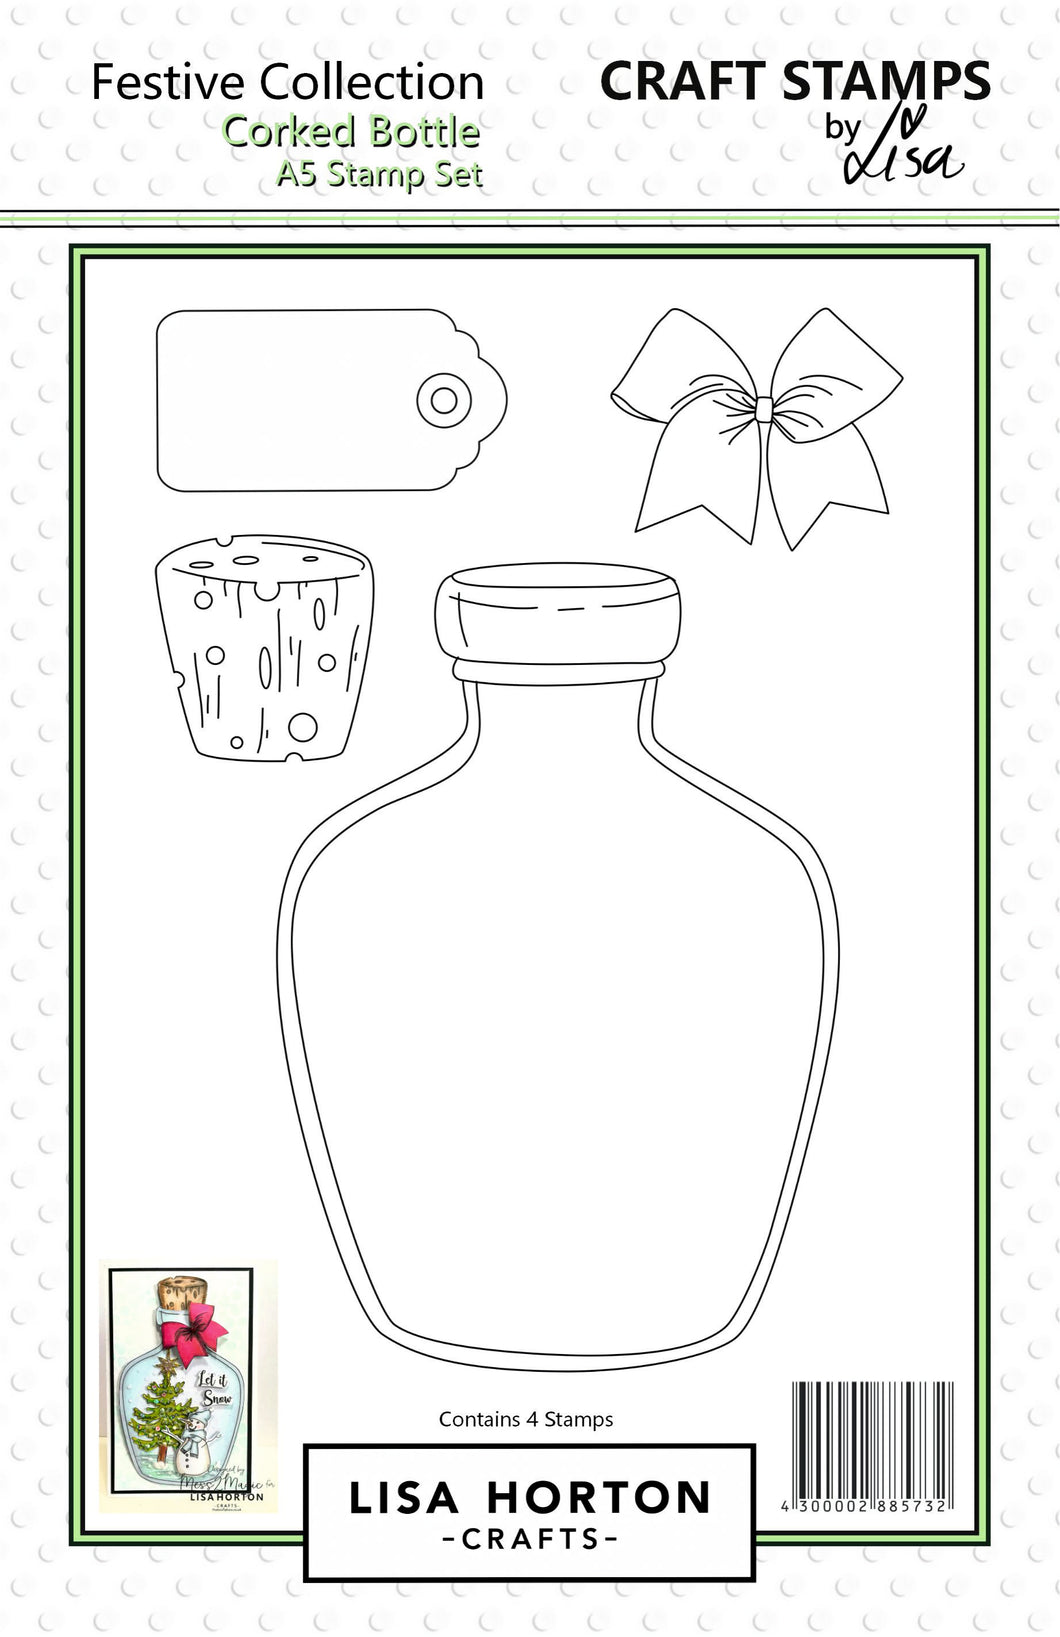 Corked Bottle A5 Stamp Set